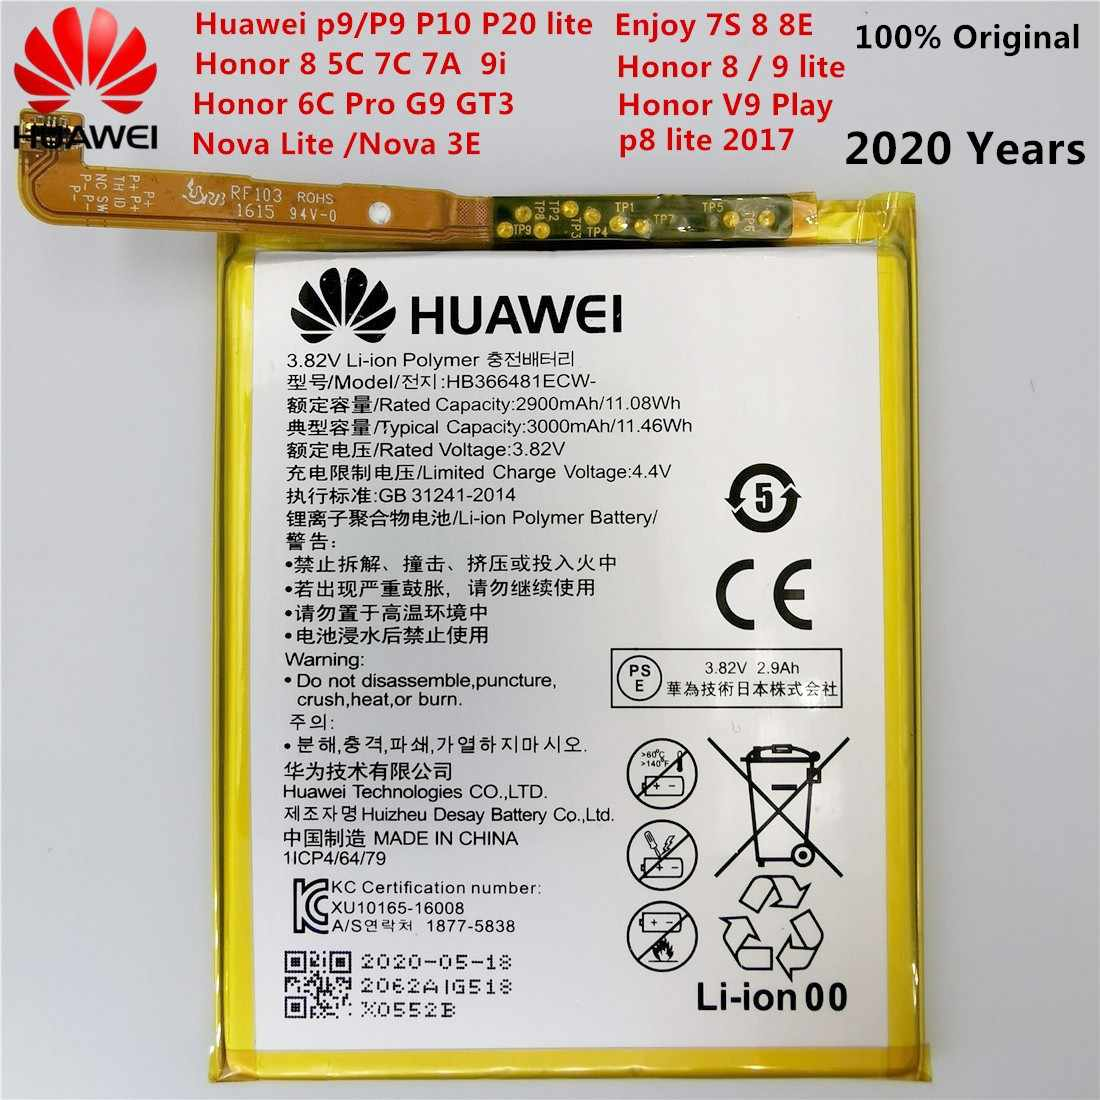 2019 Original For Huawei Hb366481ecw Rechargeable Li Ion Phone Battery For Huawei P9 Ascend P9 Lite G9 Honor 8 5c G9 3000mah Mobile Phone Batteries Aliexpress